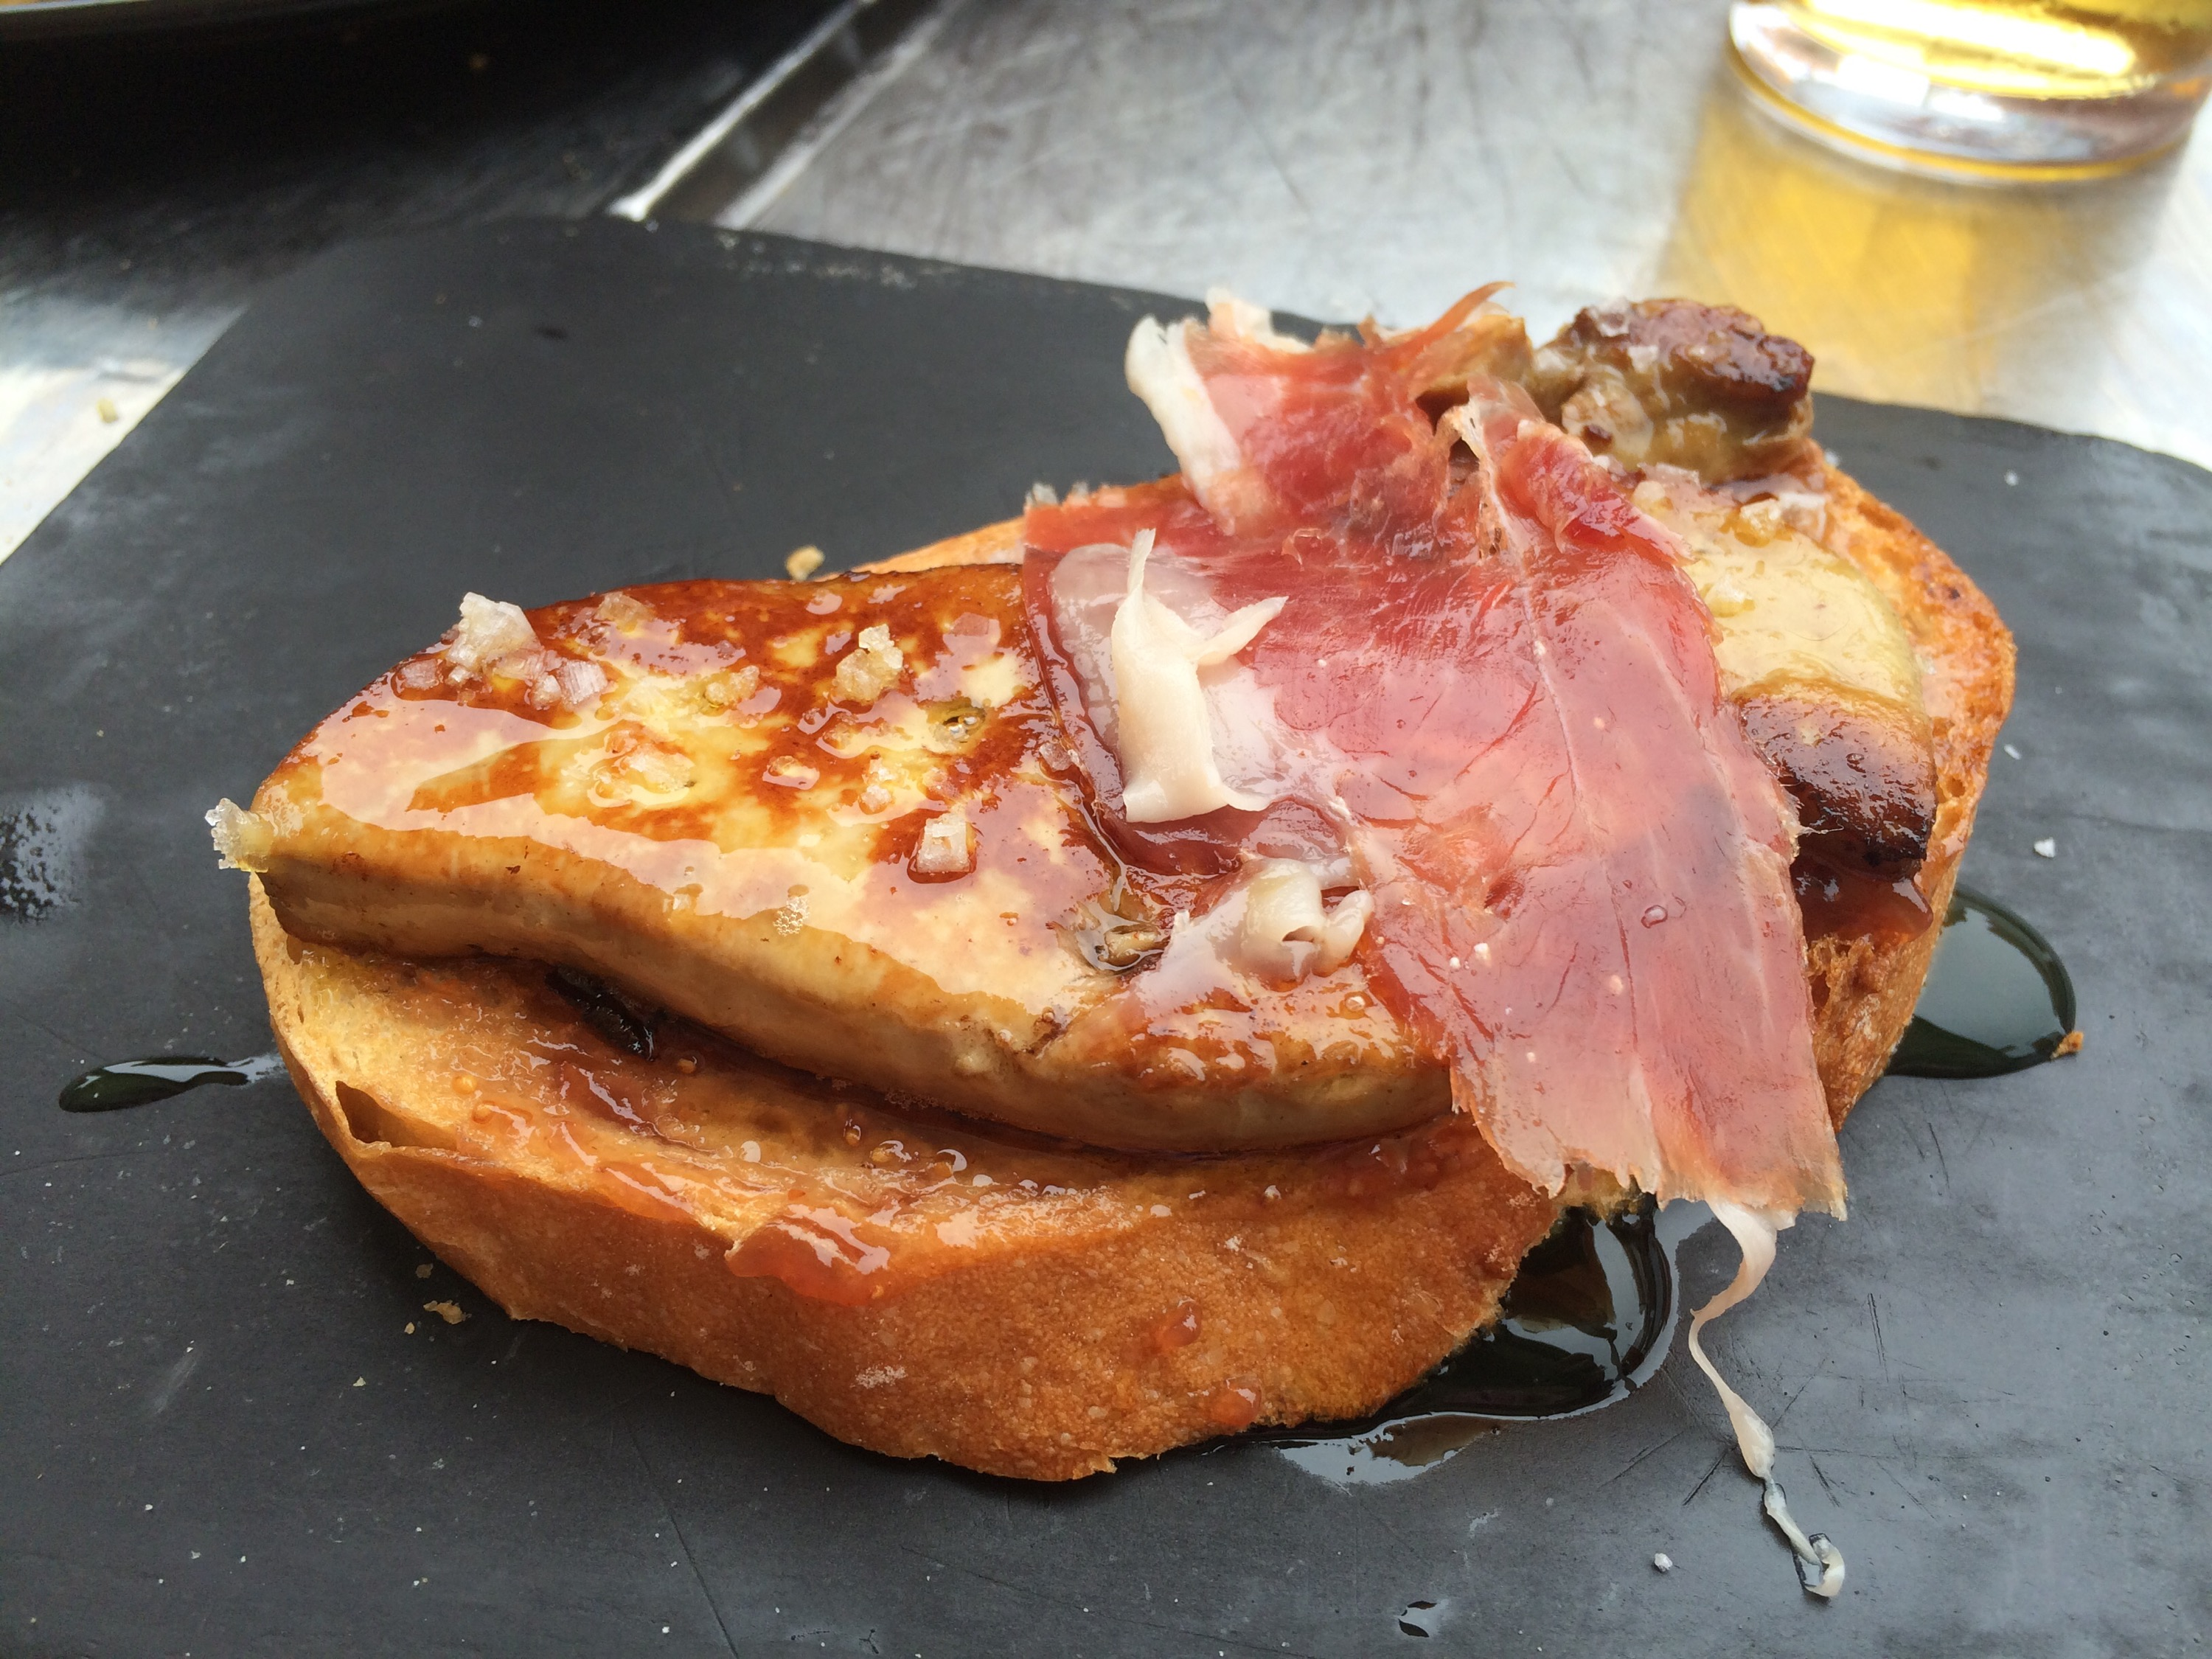 Bacon, foie y huevo de codorniz con mermelada de tomate